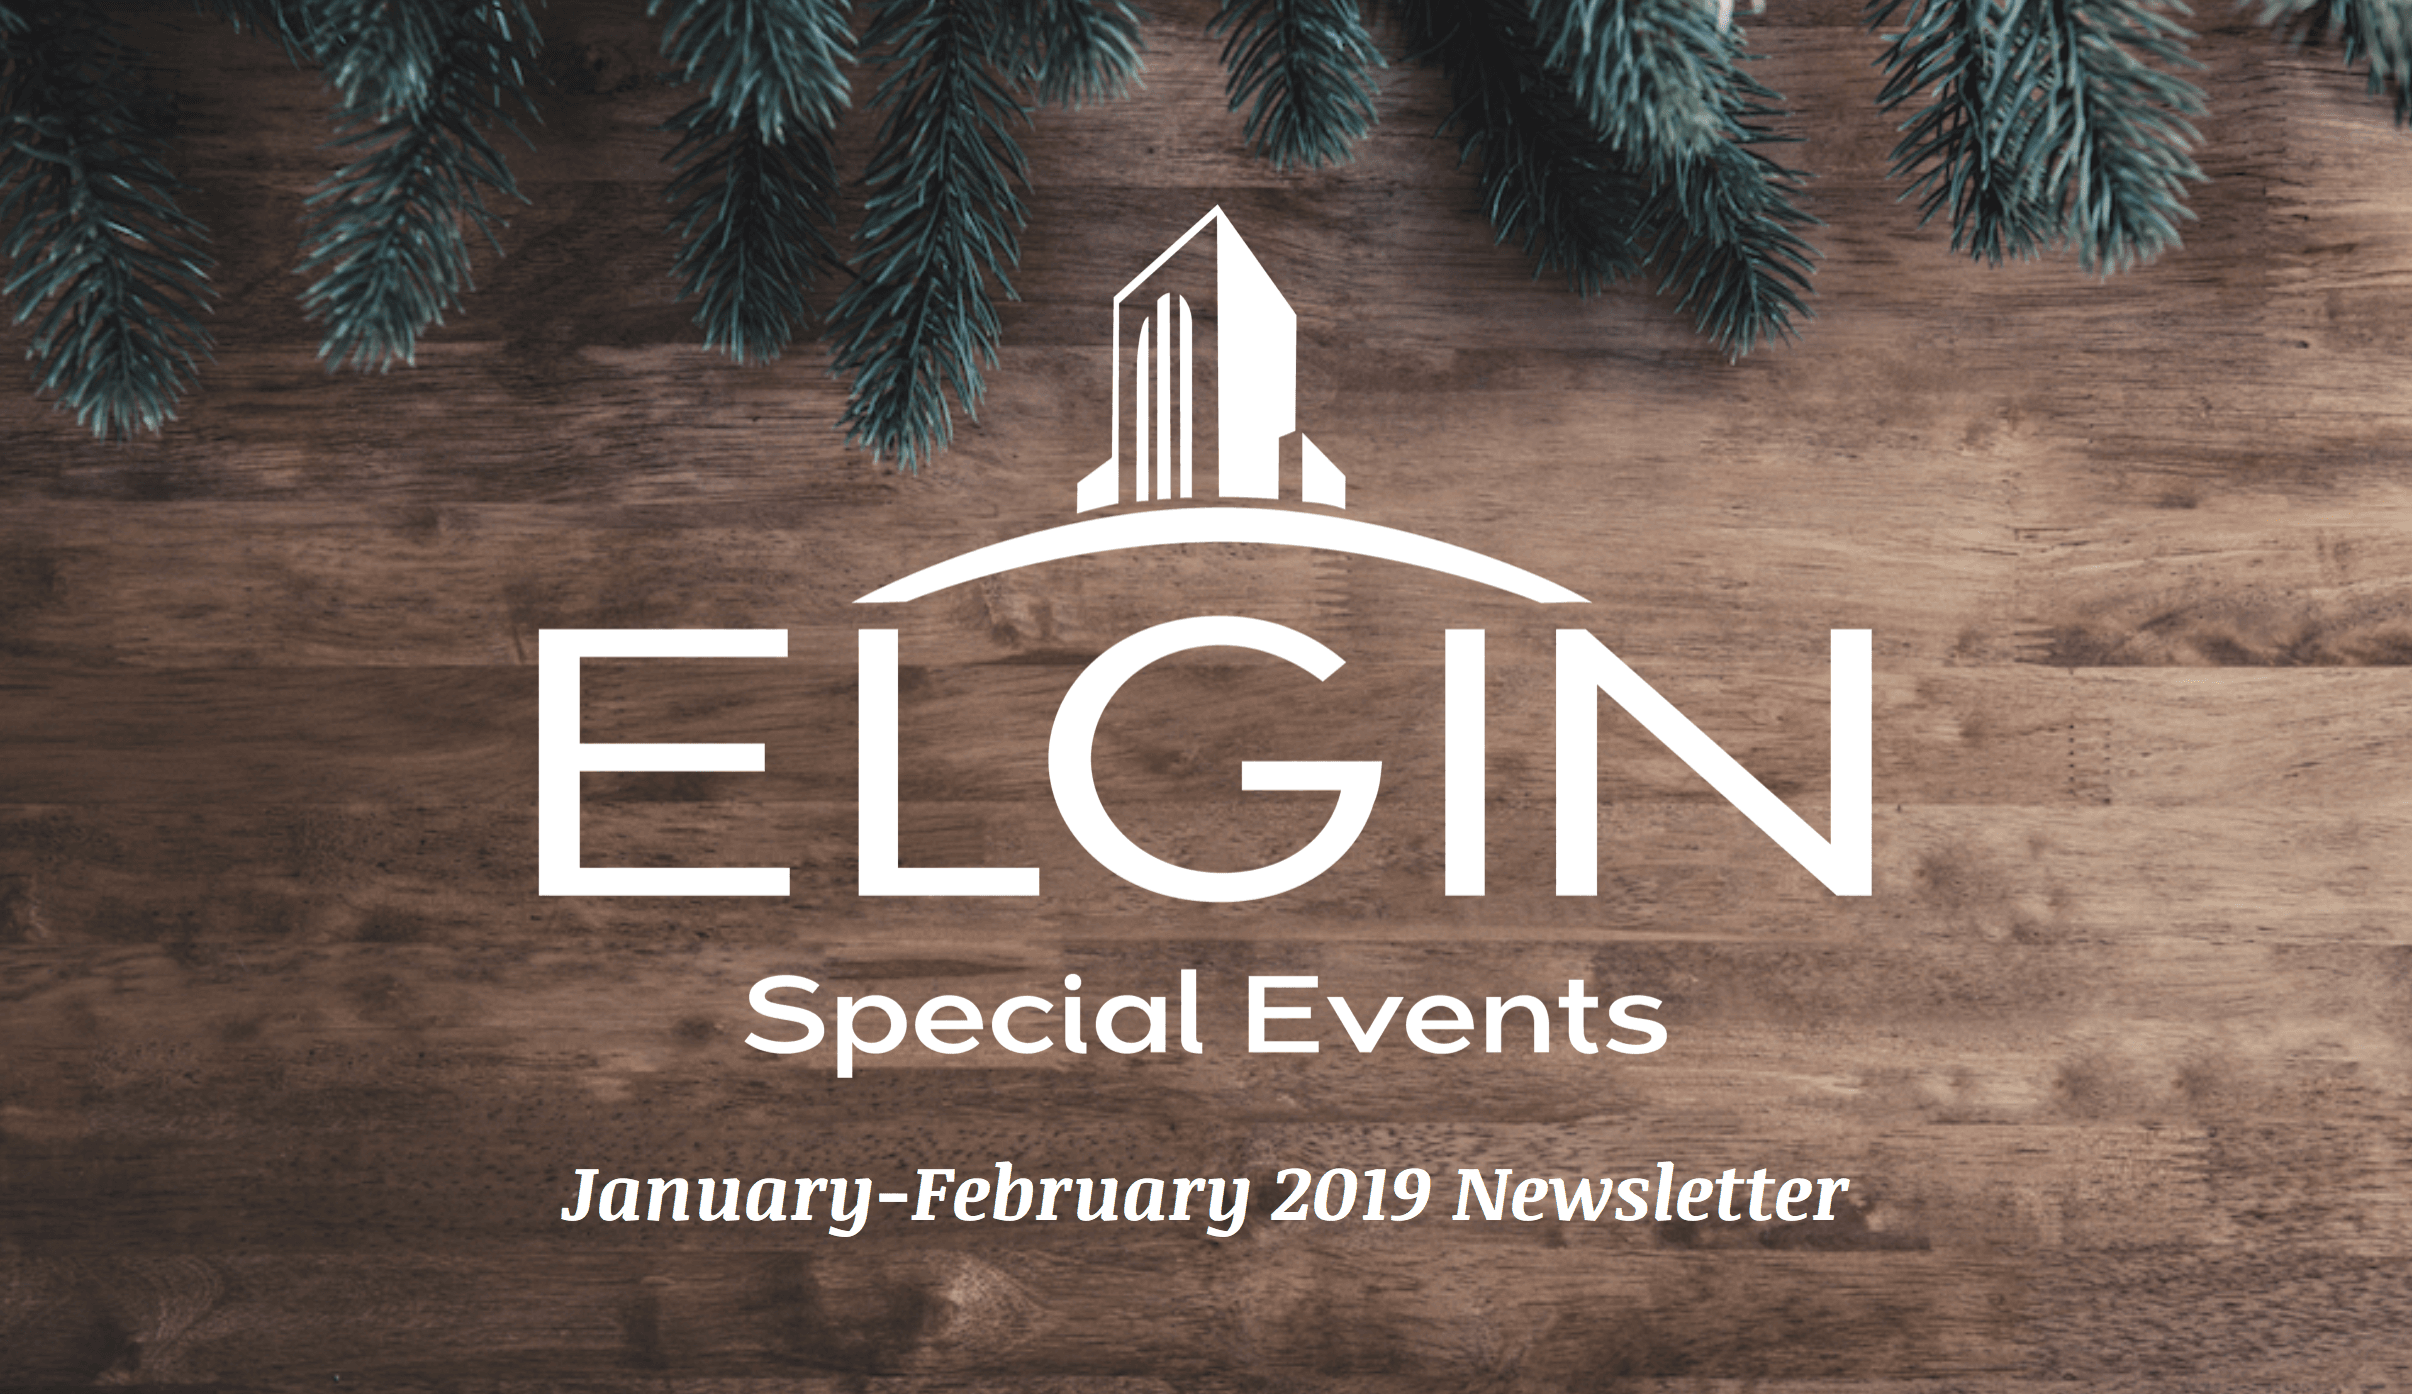 Jan/Feb Special Event Newsletter Image. wood and greenery background